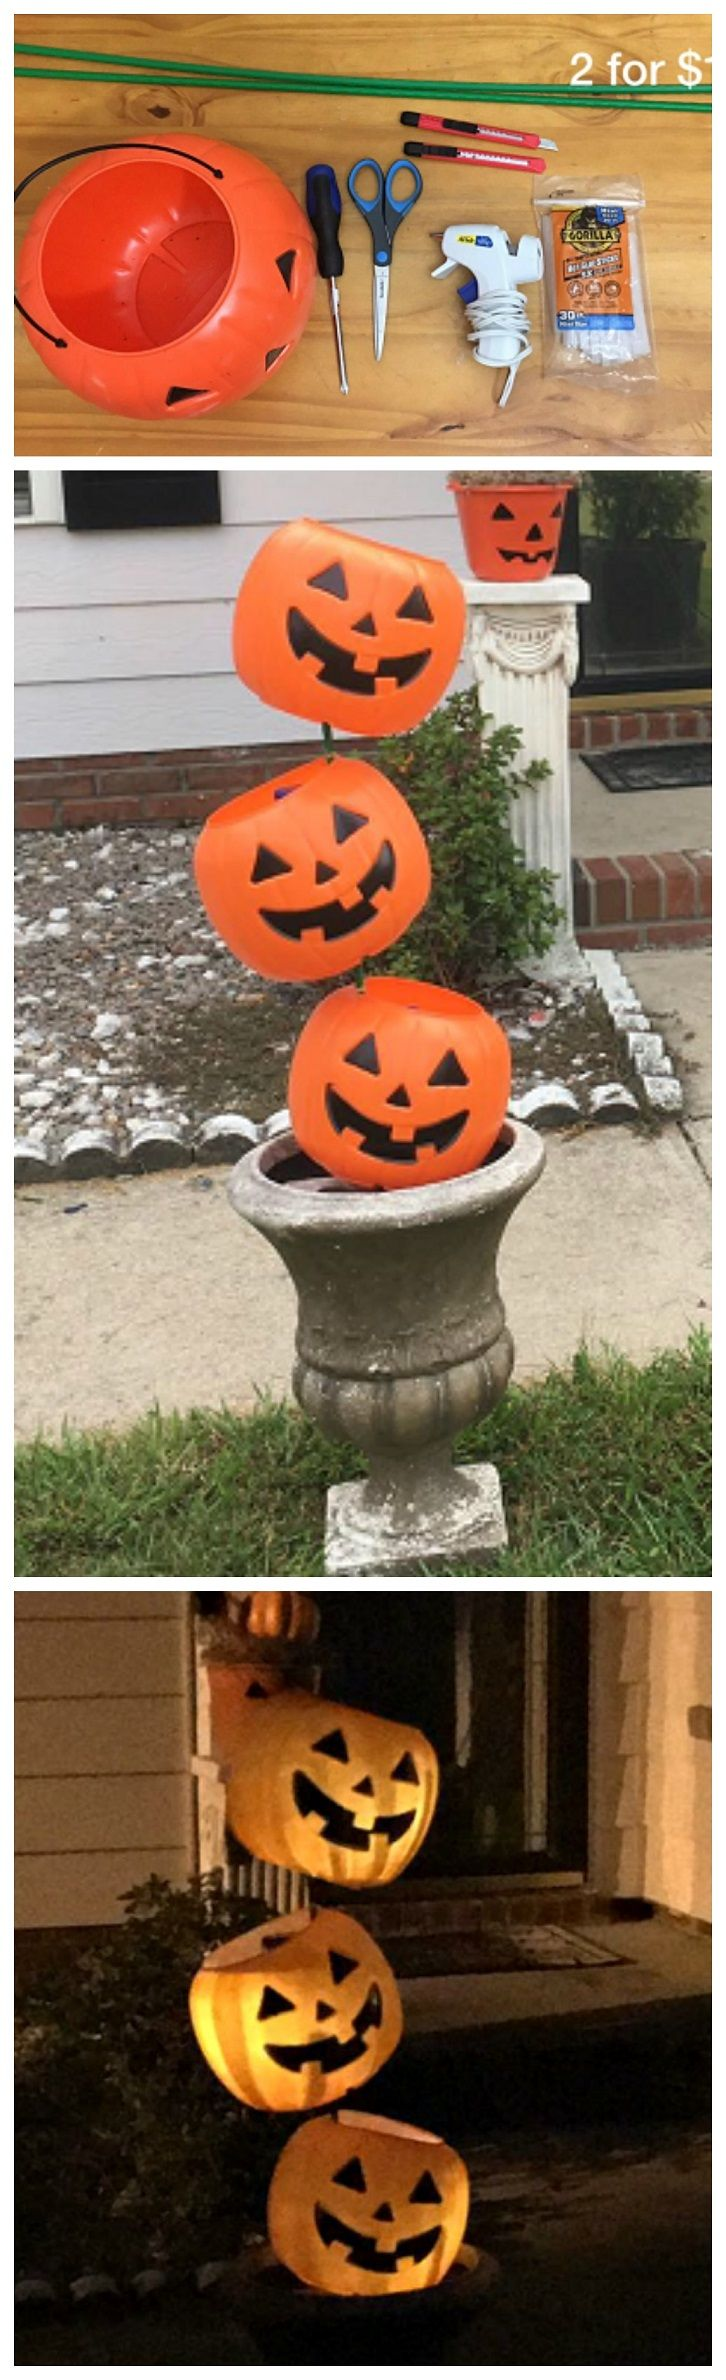 make a plastic pumpkin pail tipsy decoration for halloween such a cheap and easy craft - Halloween Decorations Pumpkins